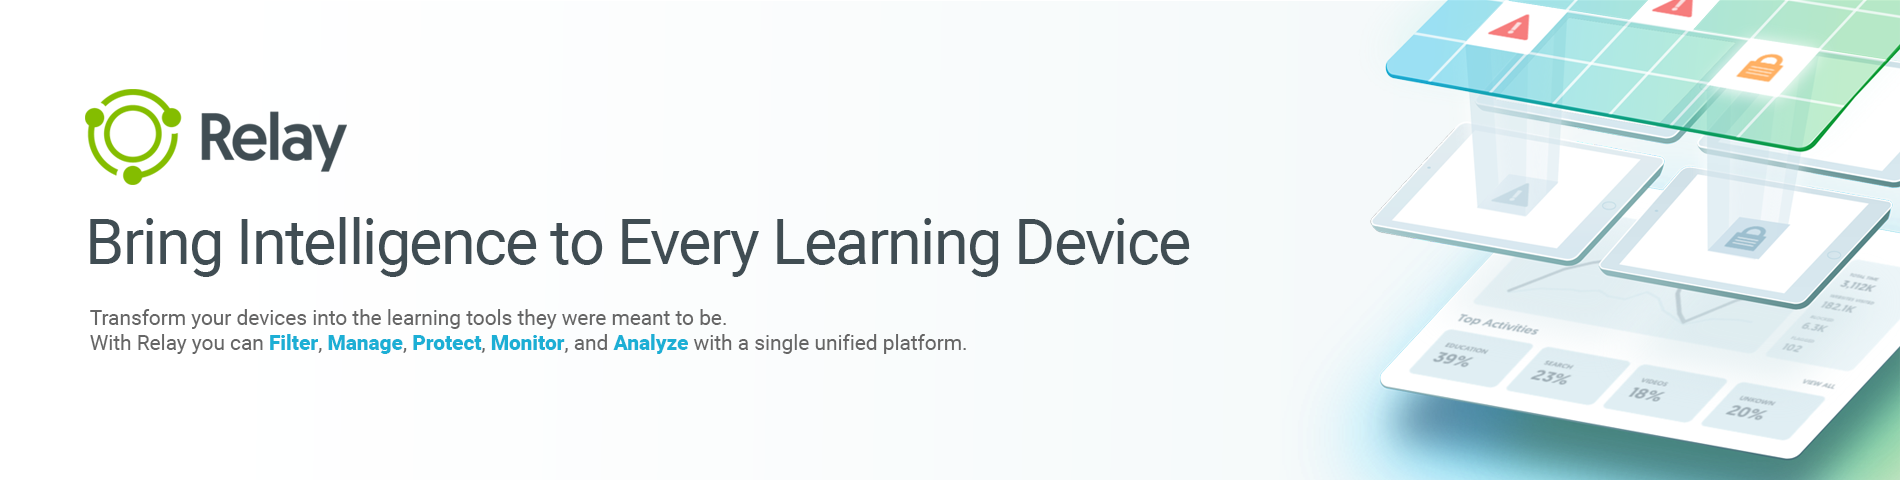 Relay   Bring Intelligence to Every Learning Device